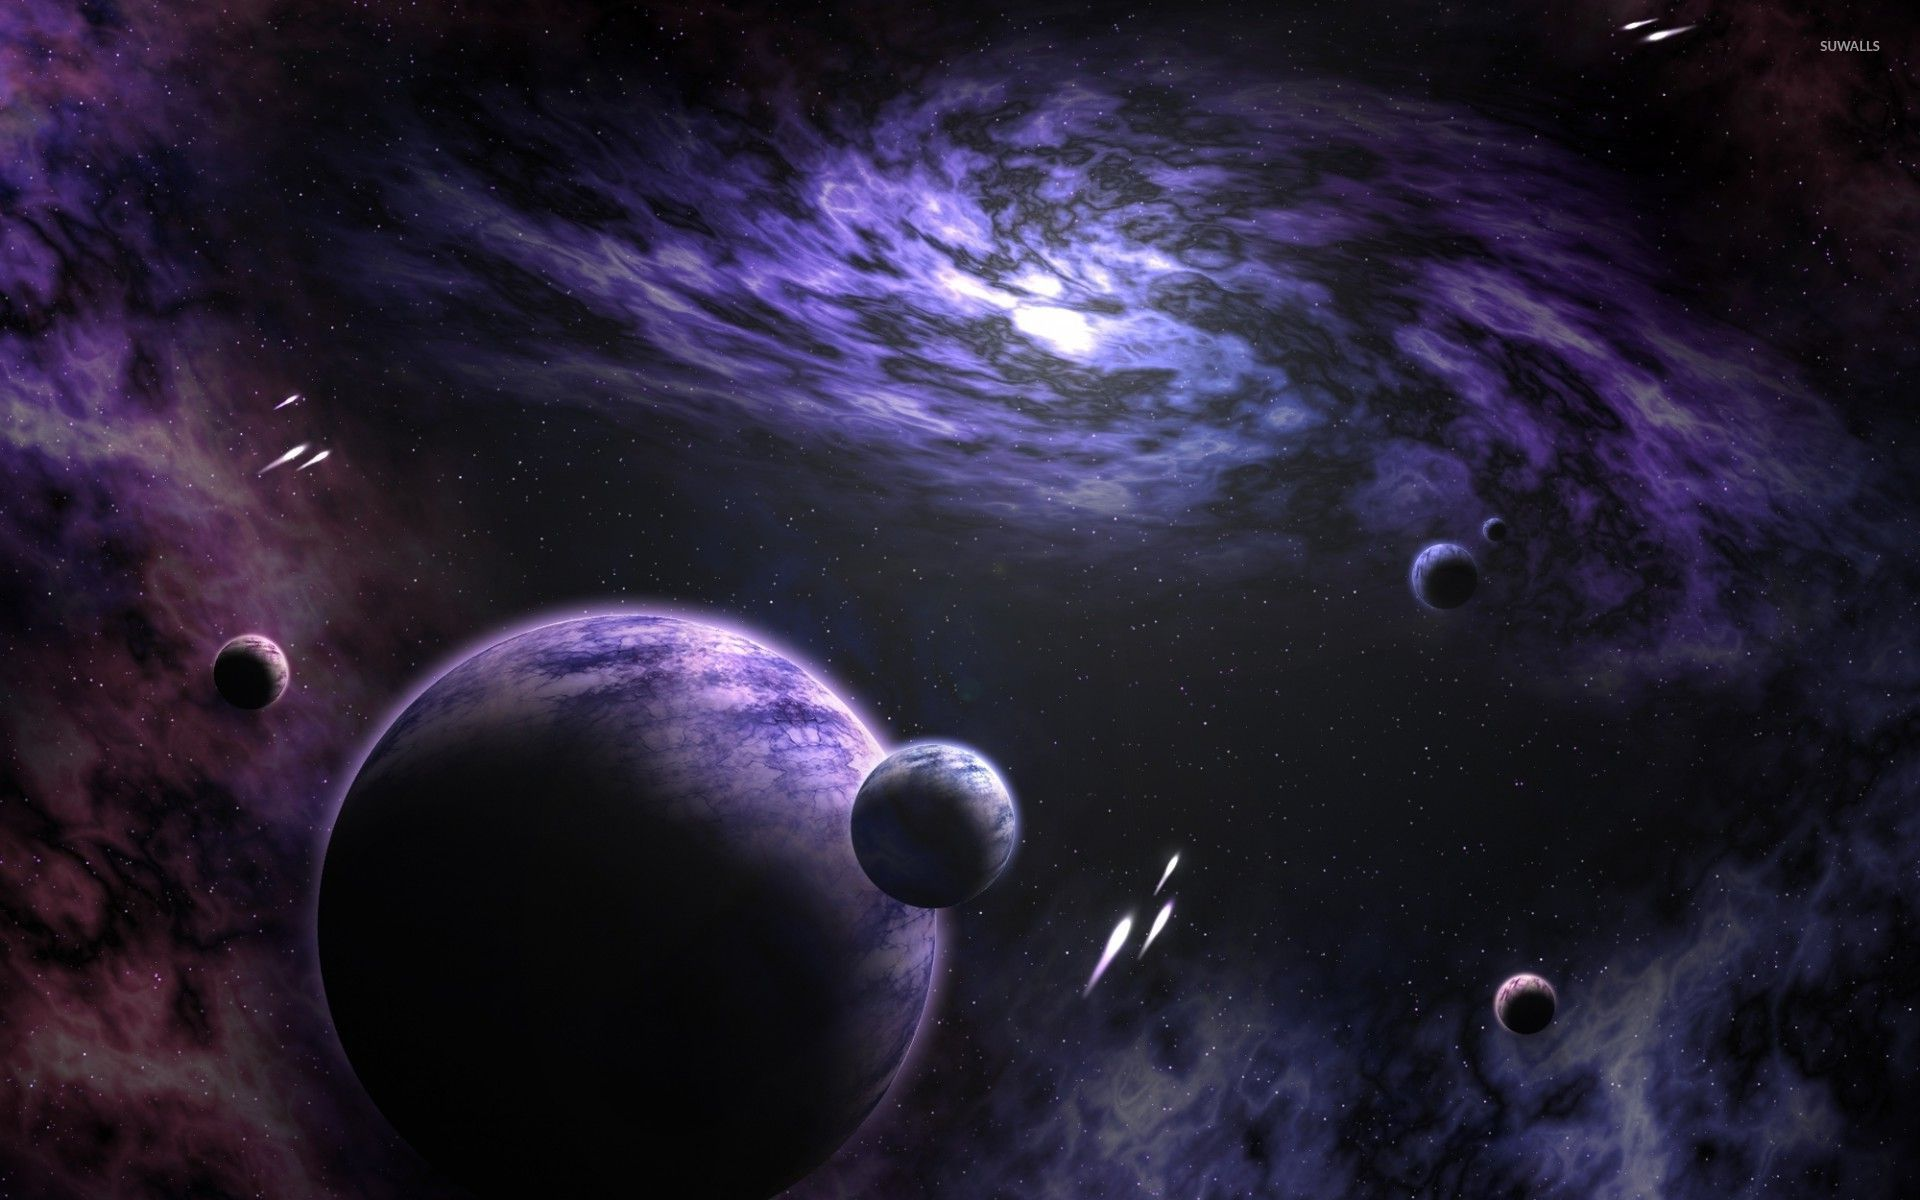 planets in the purple universe wallpaper - space wallpapers - #52961